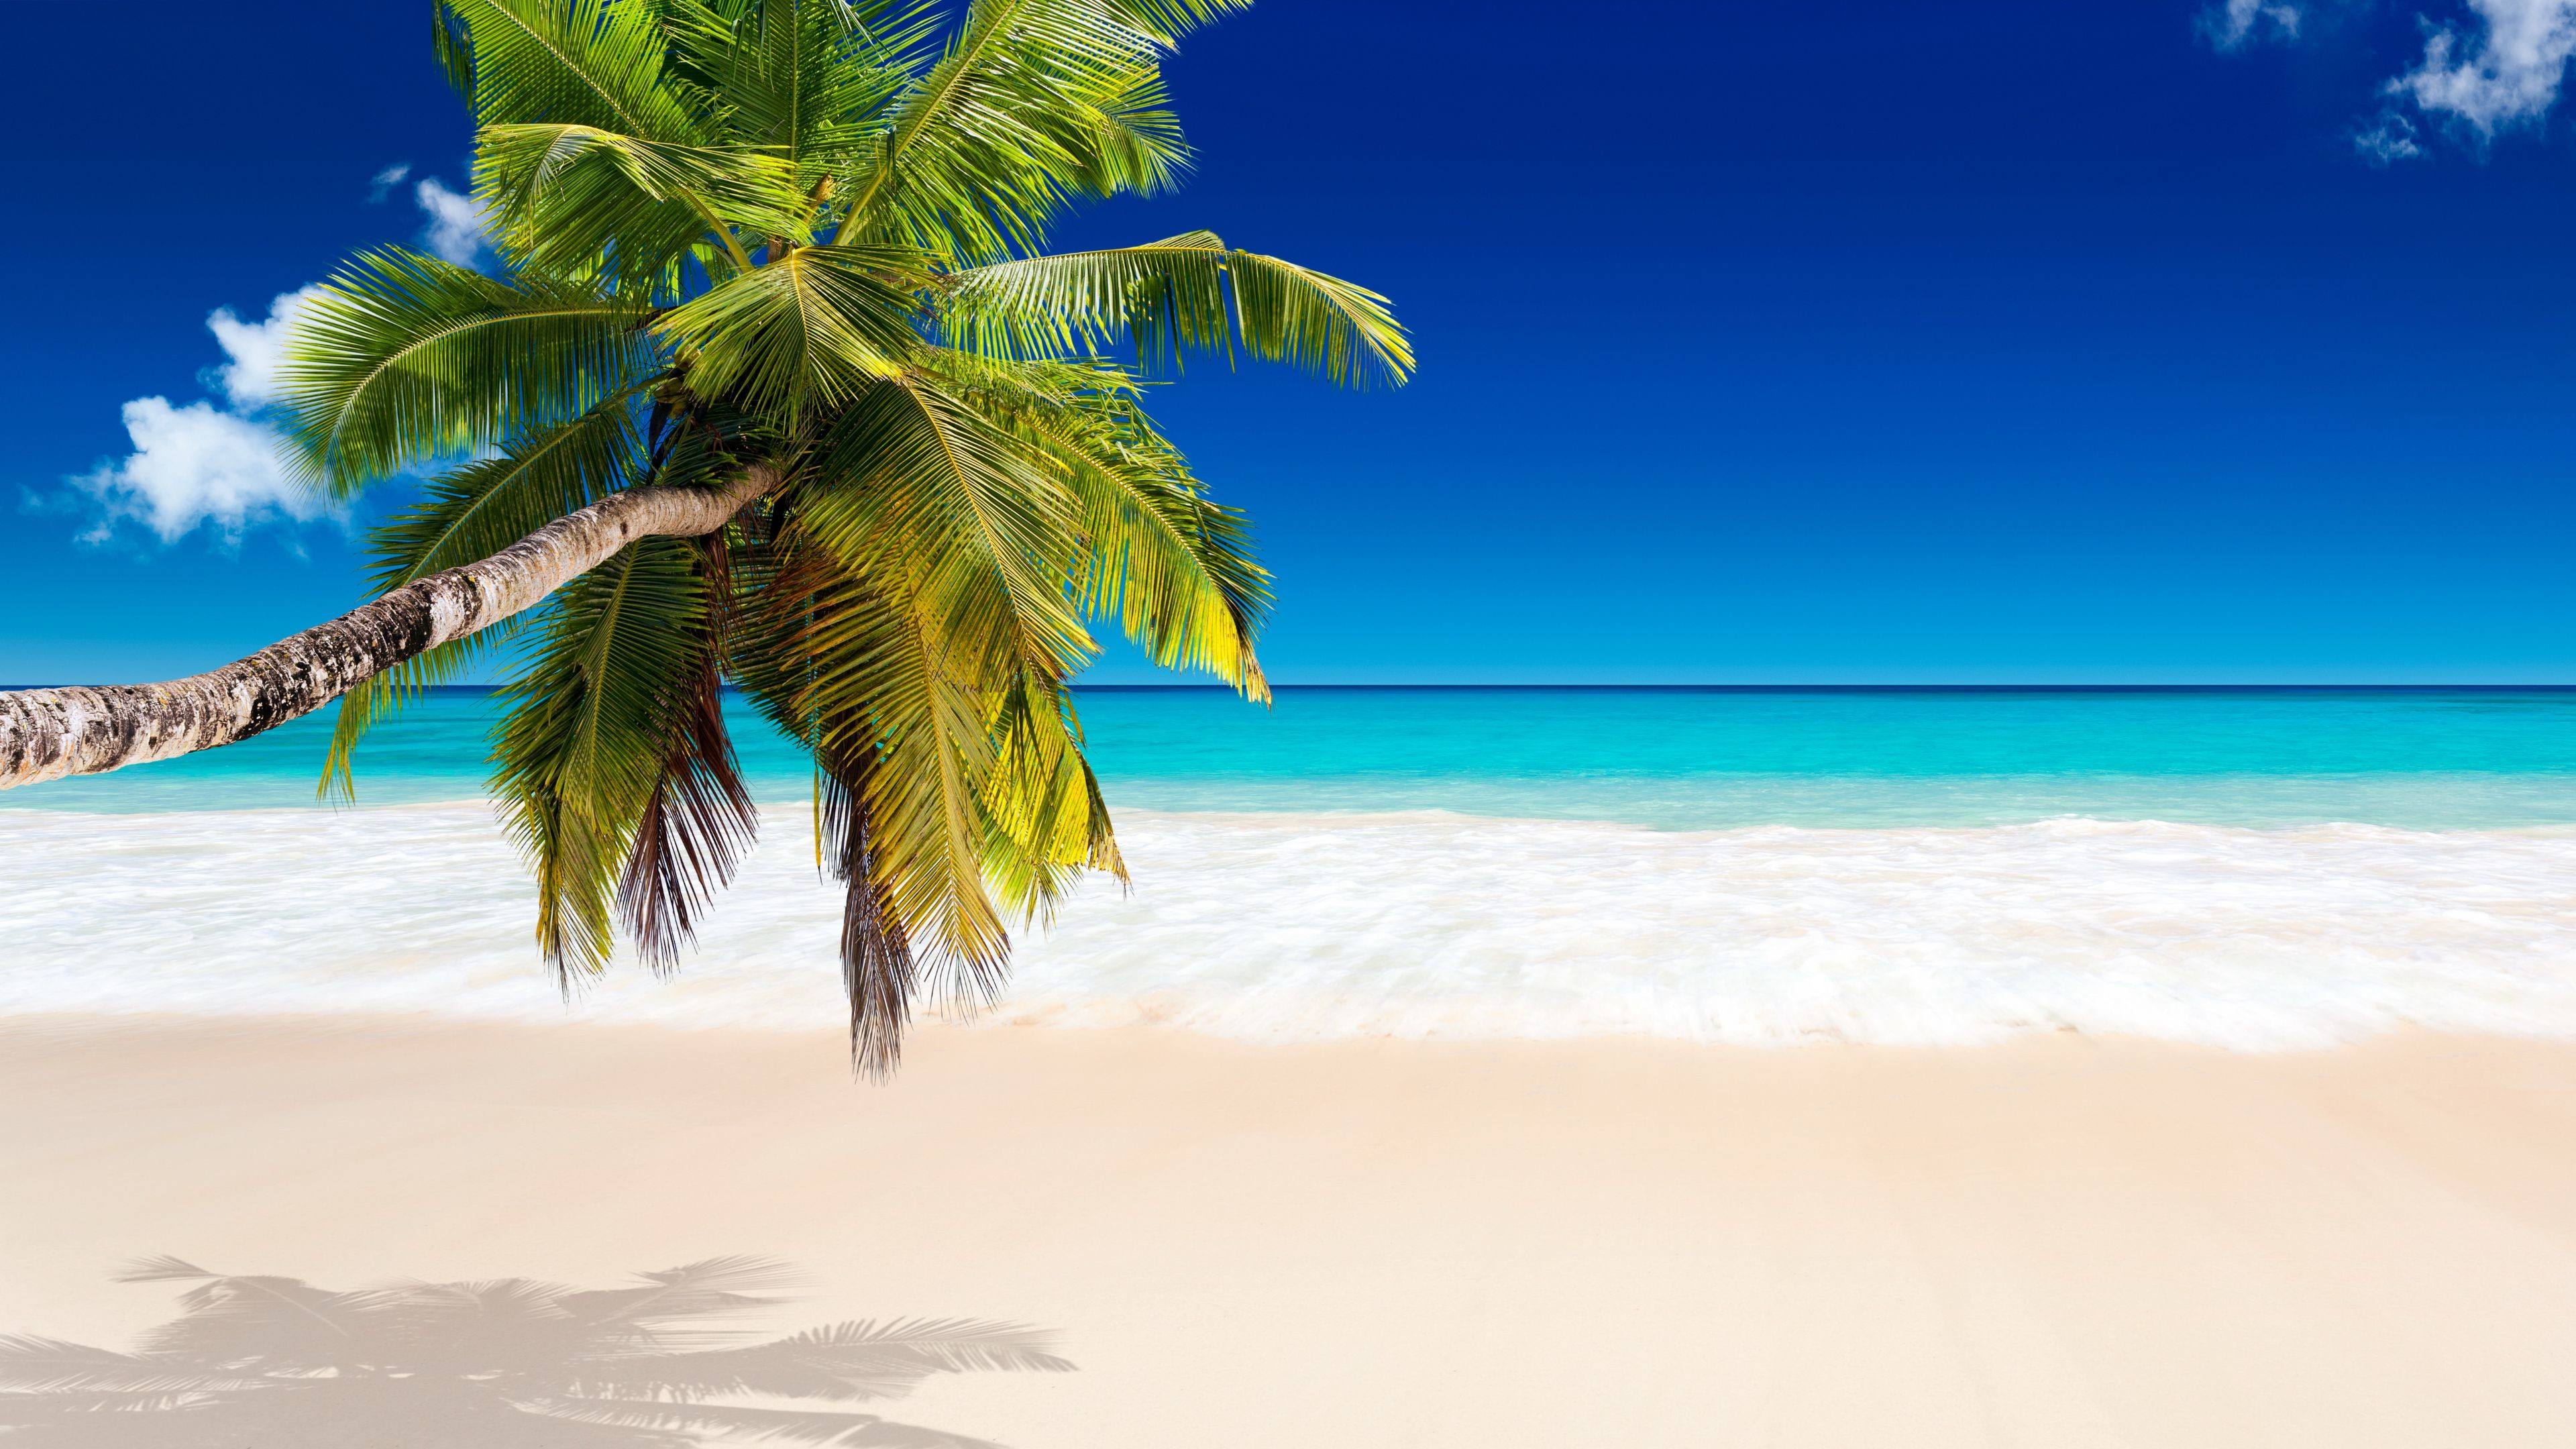 3840x2160 Caribbean Backgrounds